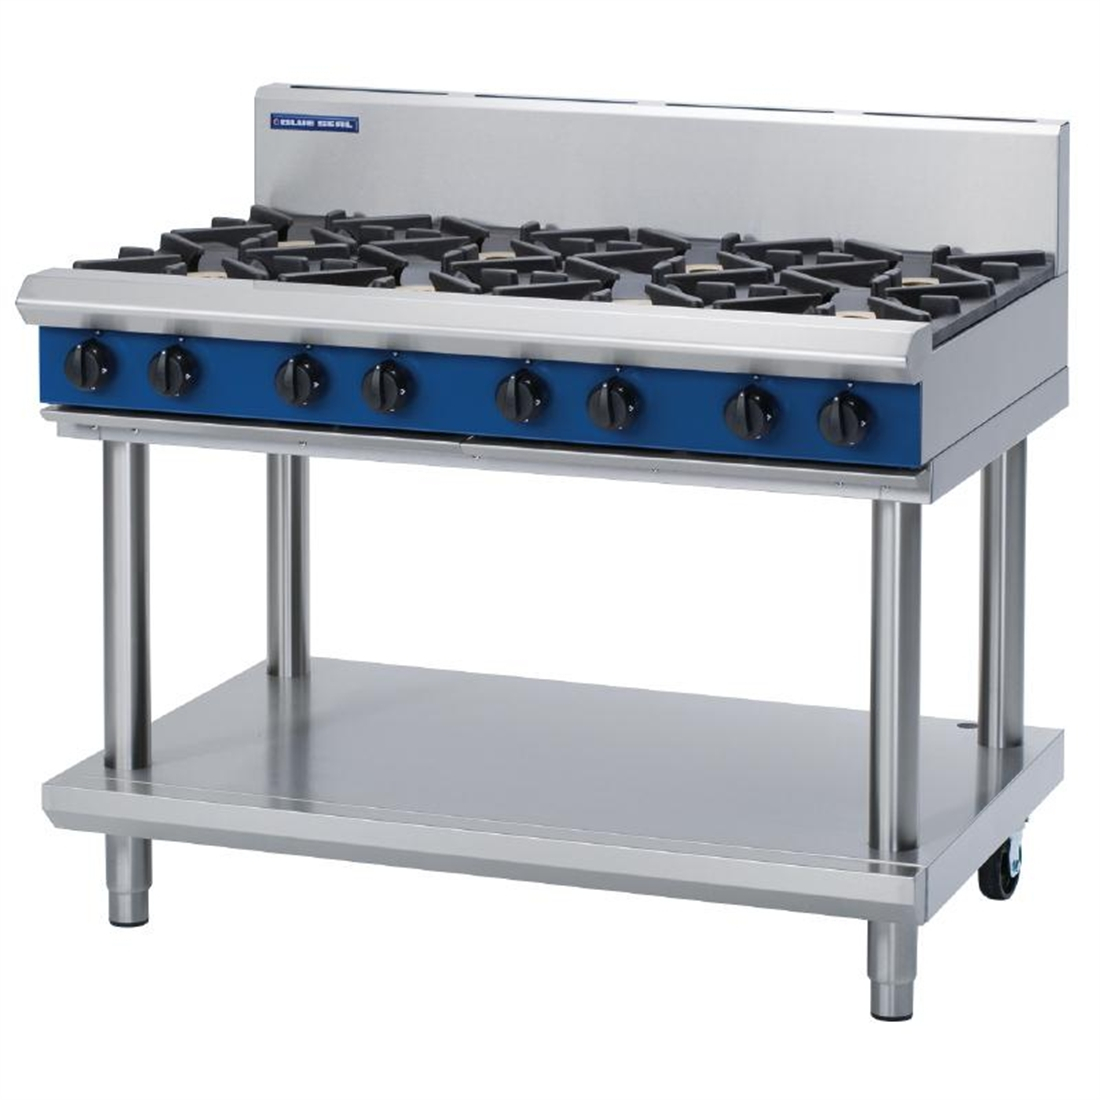 Blue Seal Evolution Cooktop 8 Open Burners LPG on Stand1200mm G518D-LS/L